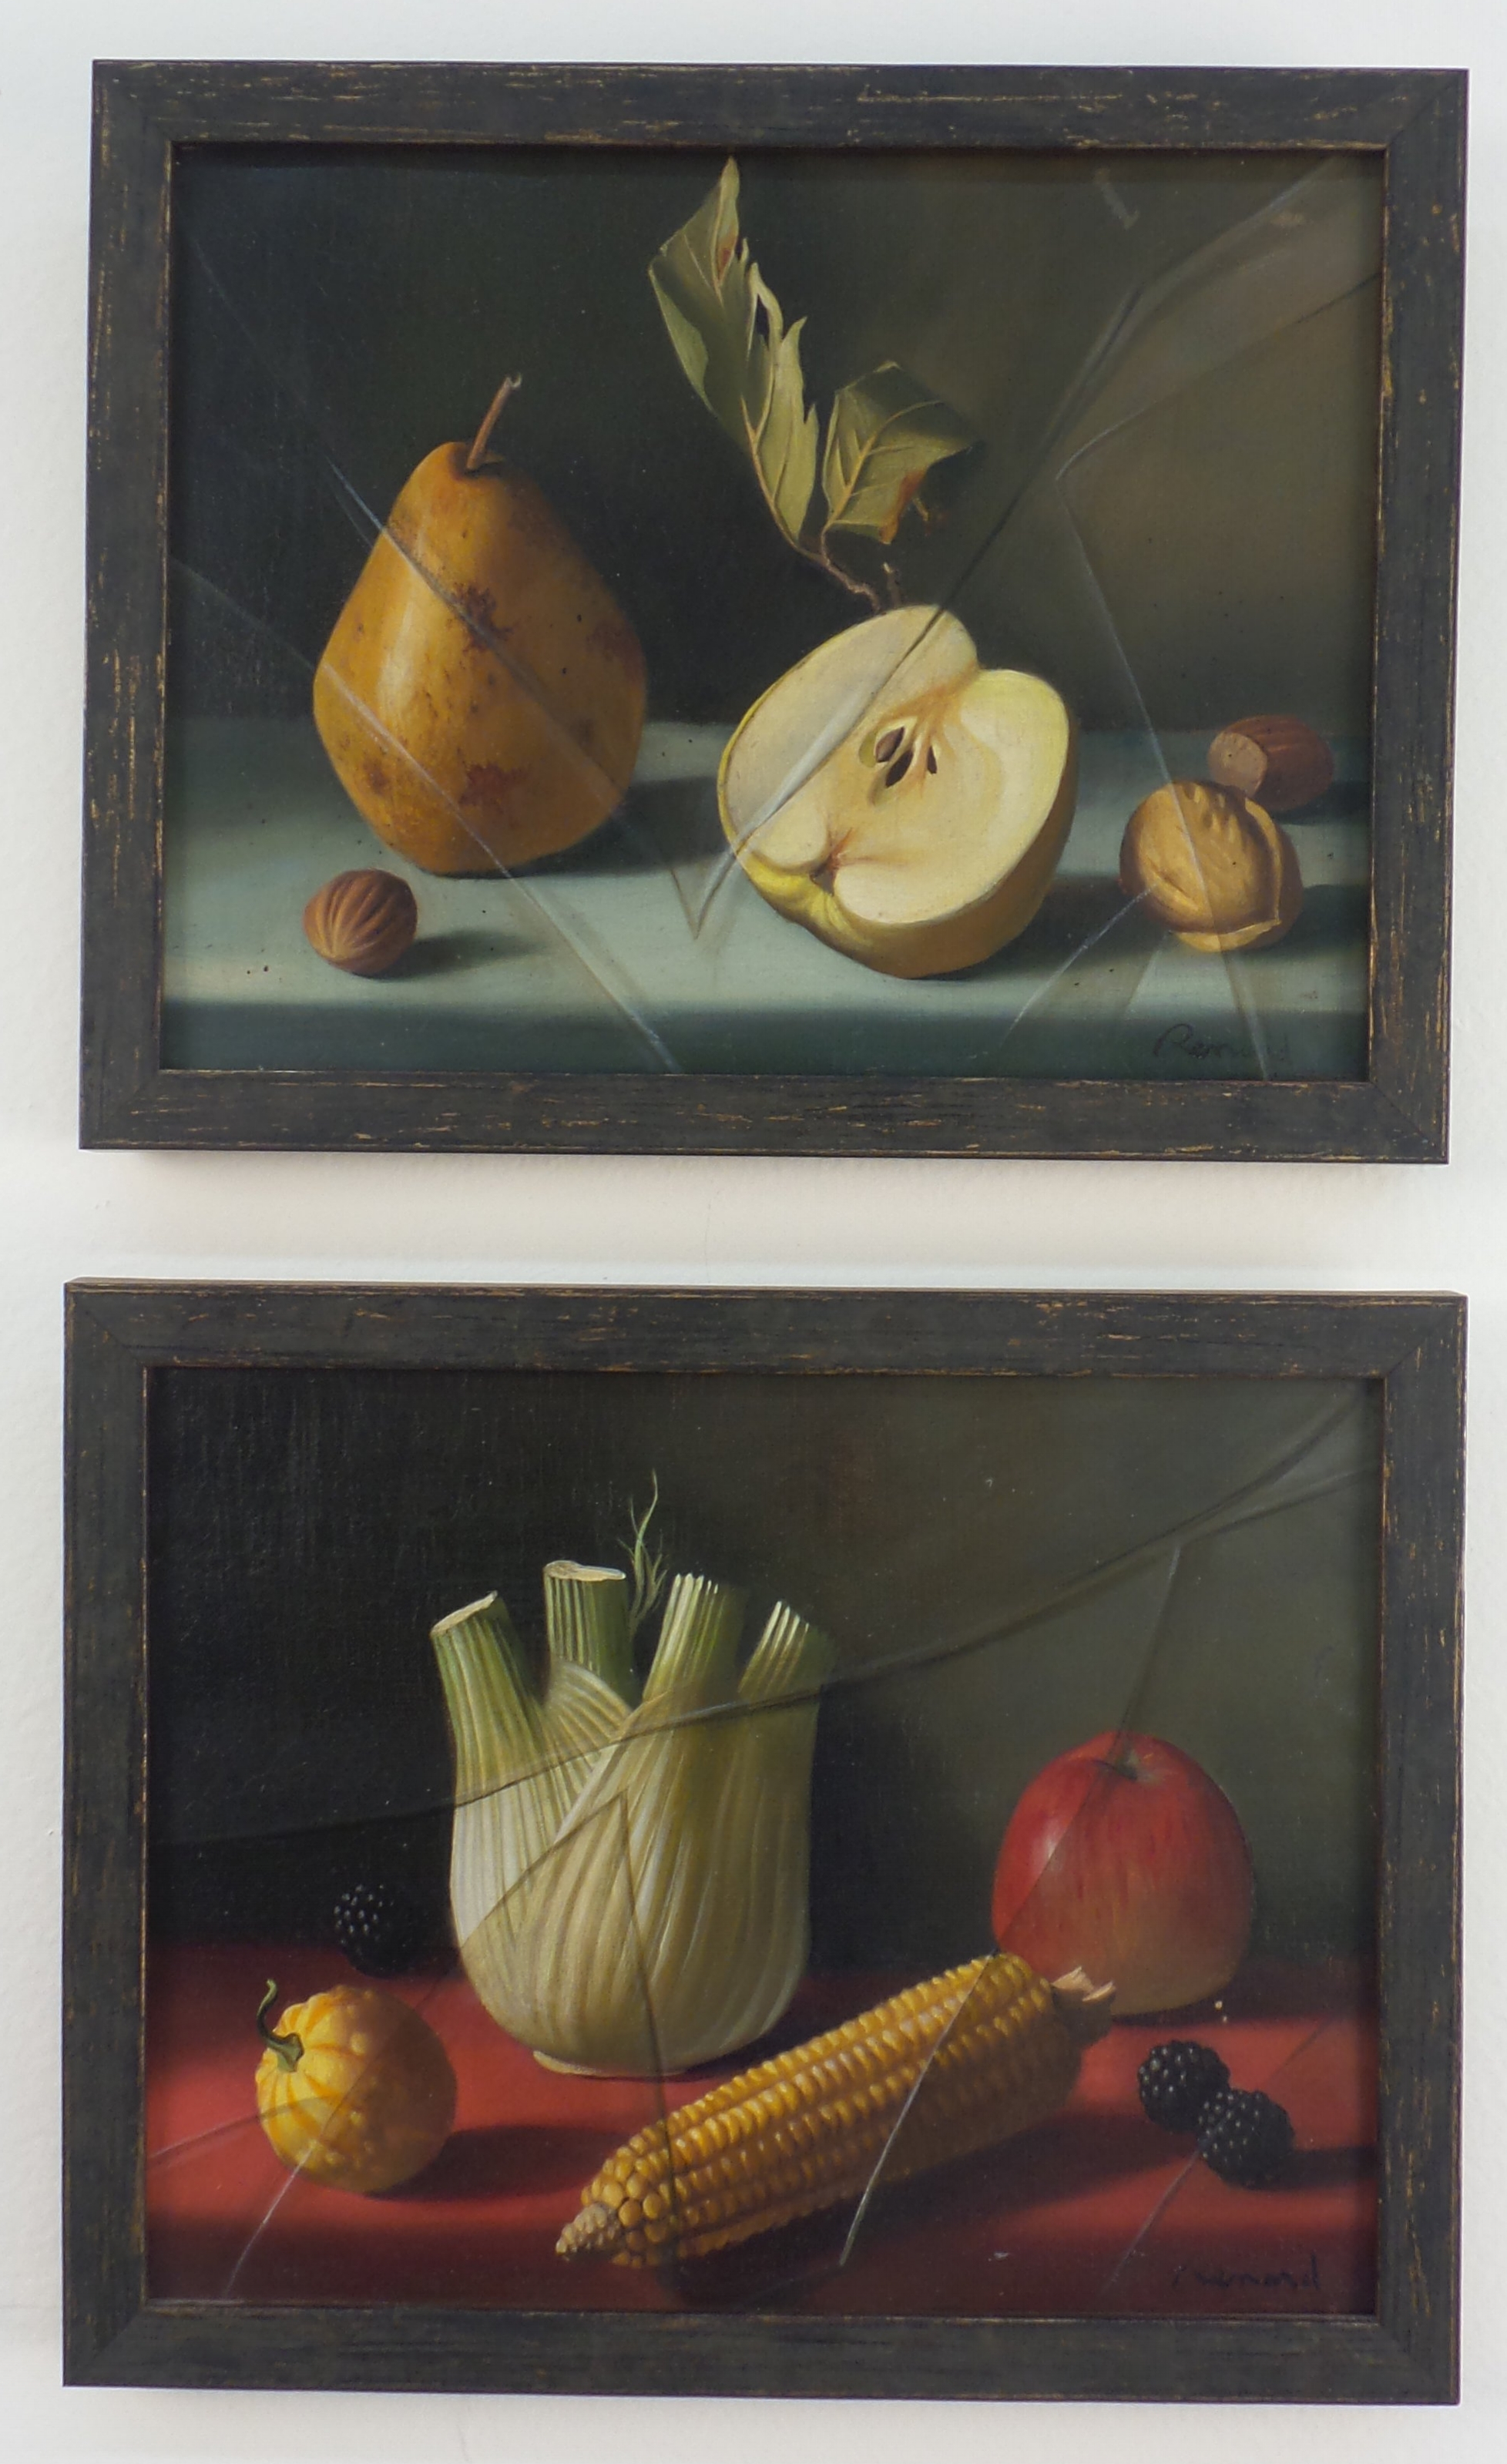 Two works by Fernand Renard for Fred Victoria, oil on canvas,circa 1955, from Tony Victoria's collection